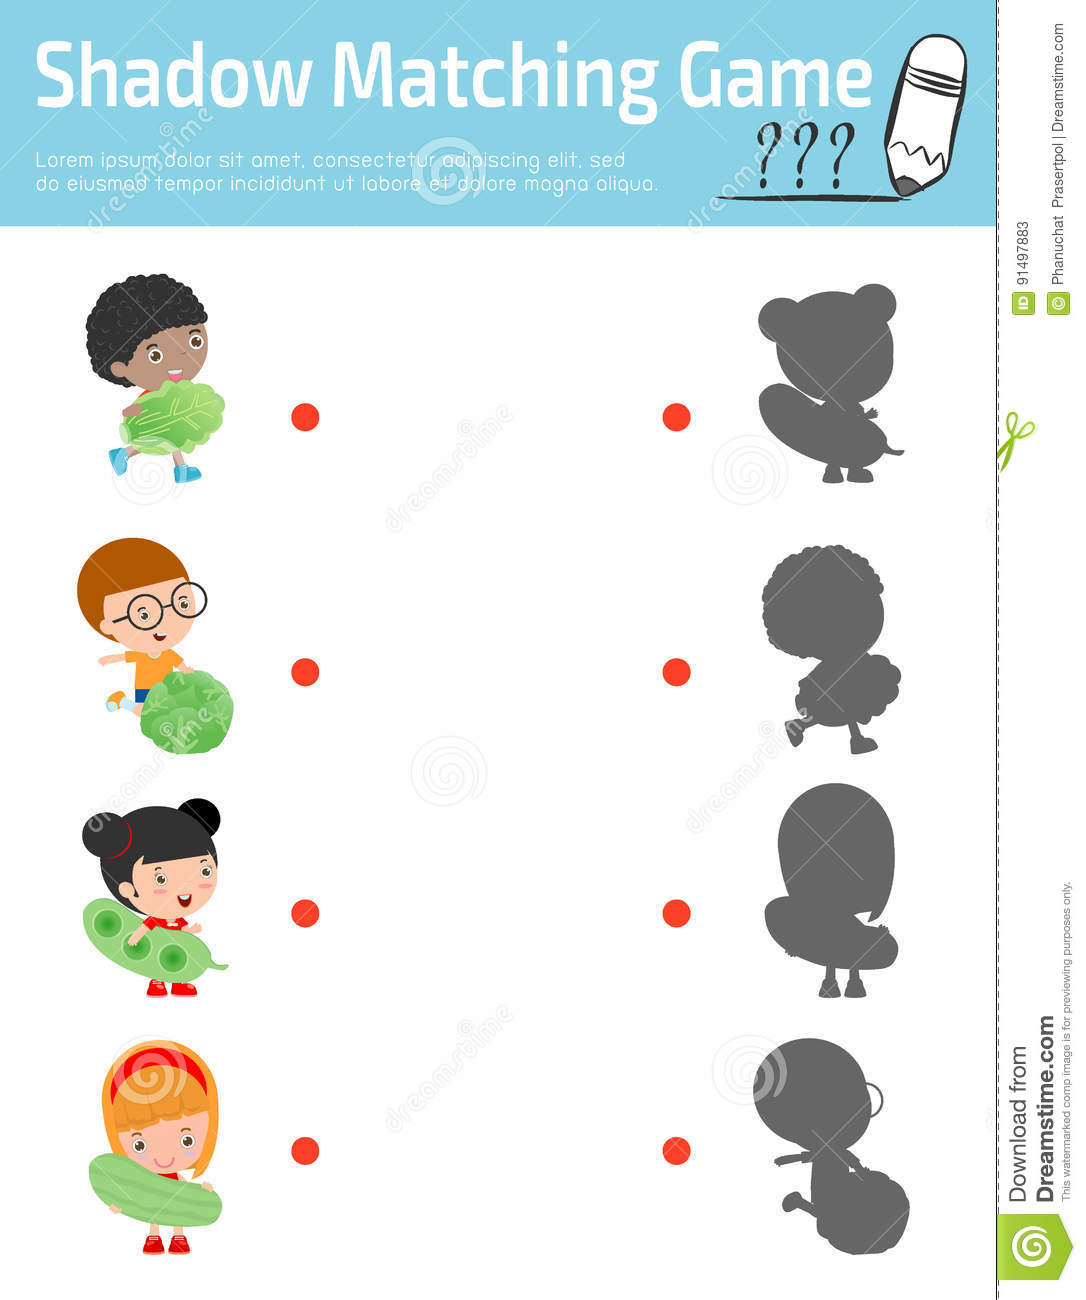 Shadow Matching Game For Kids Visual Game For Kid